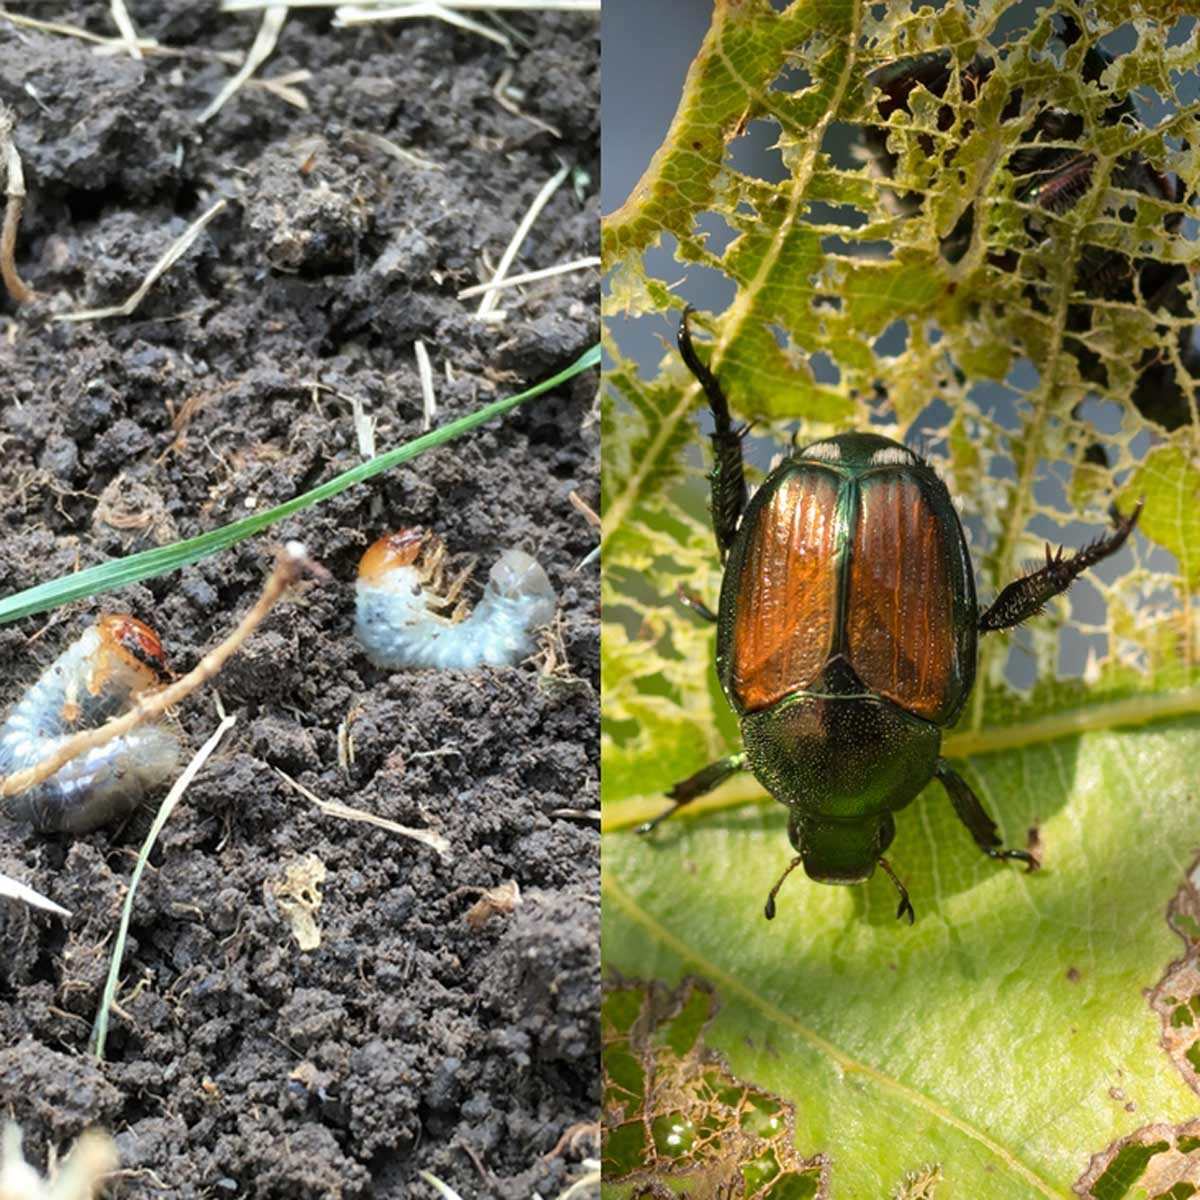 10 Worst Garden Insect Pests and How to Get Rid of Bugs on